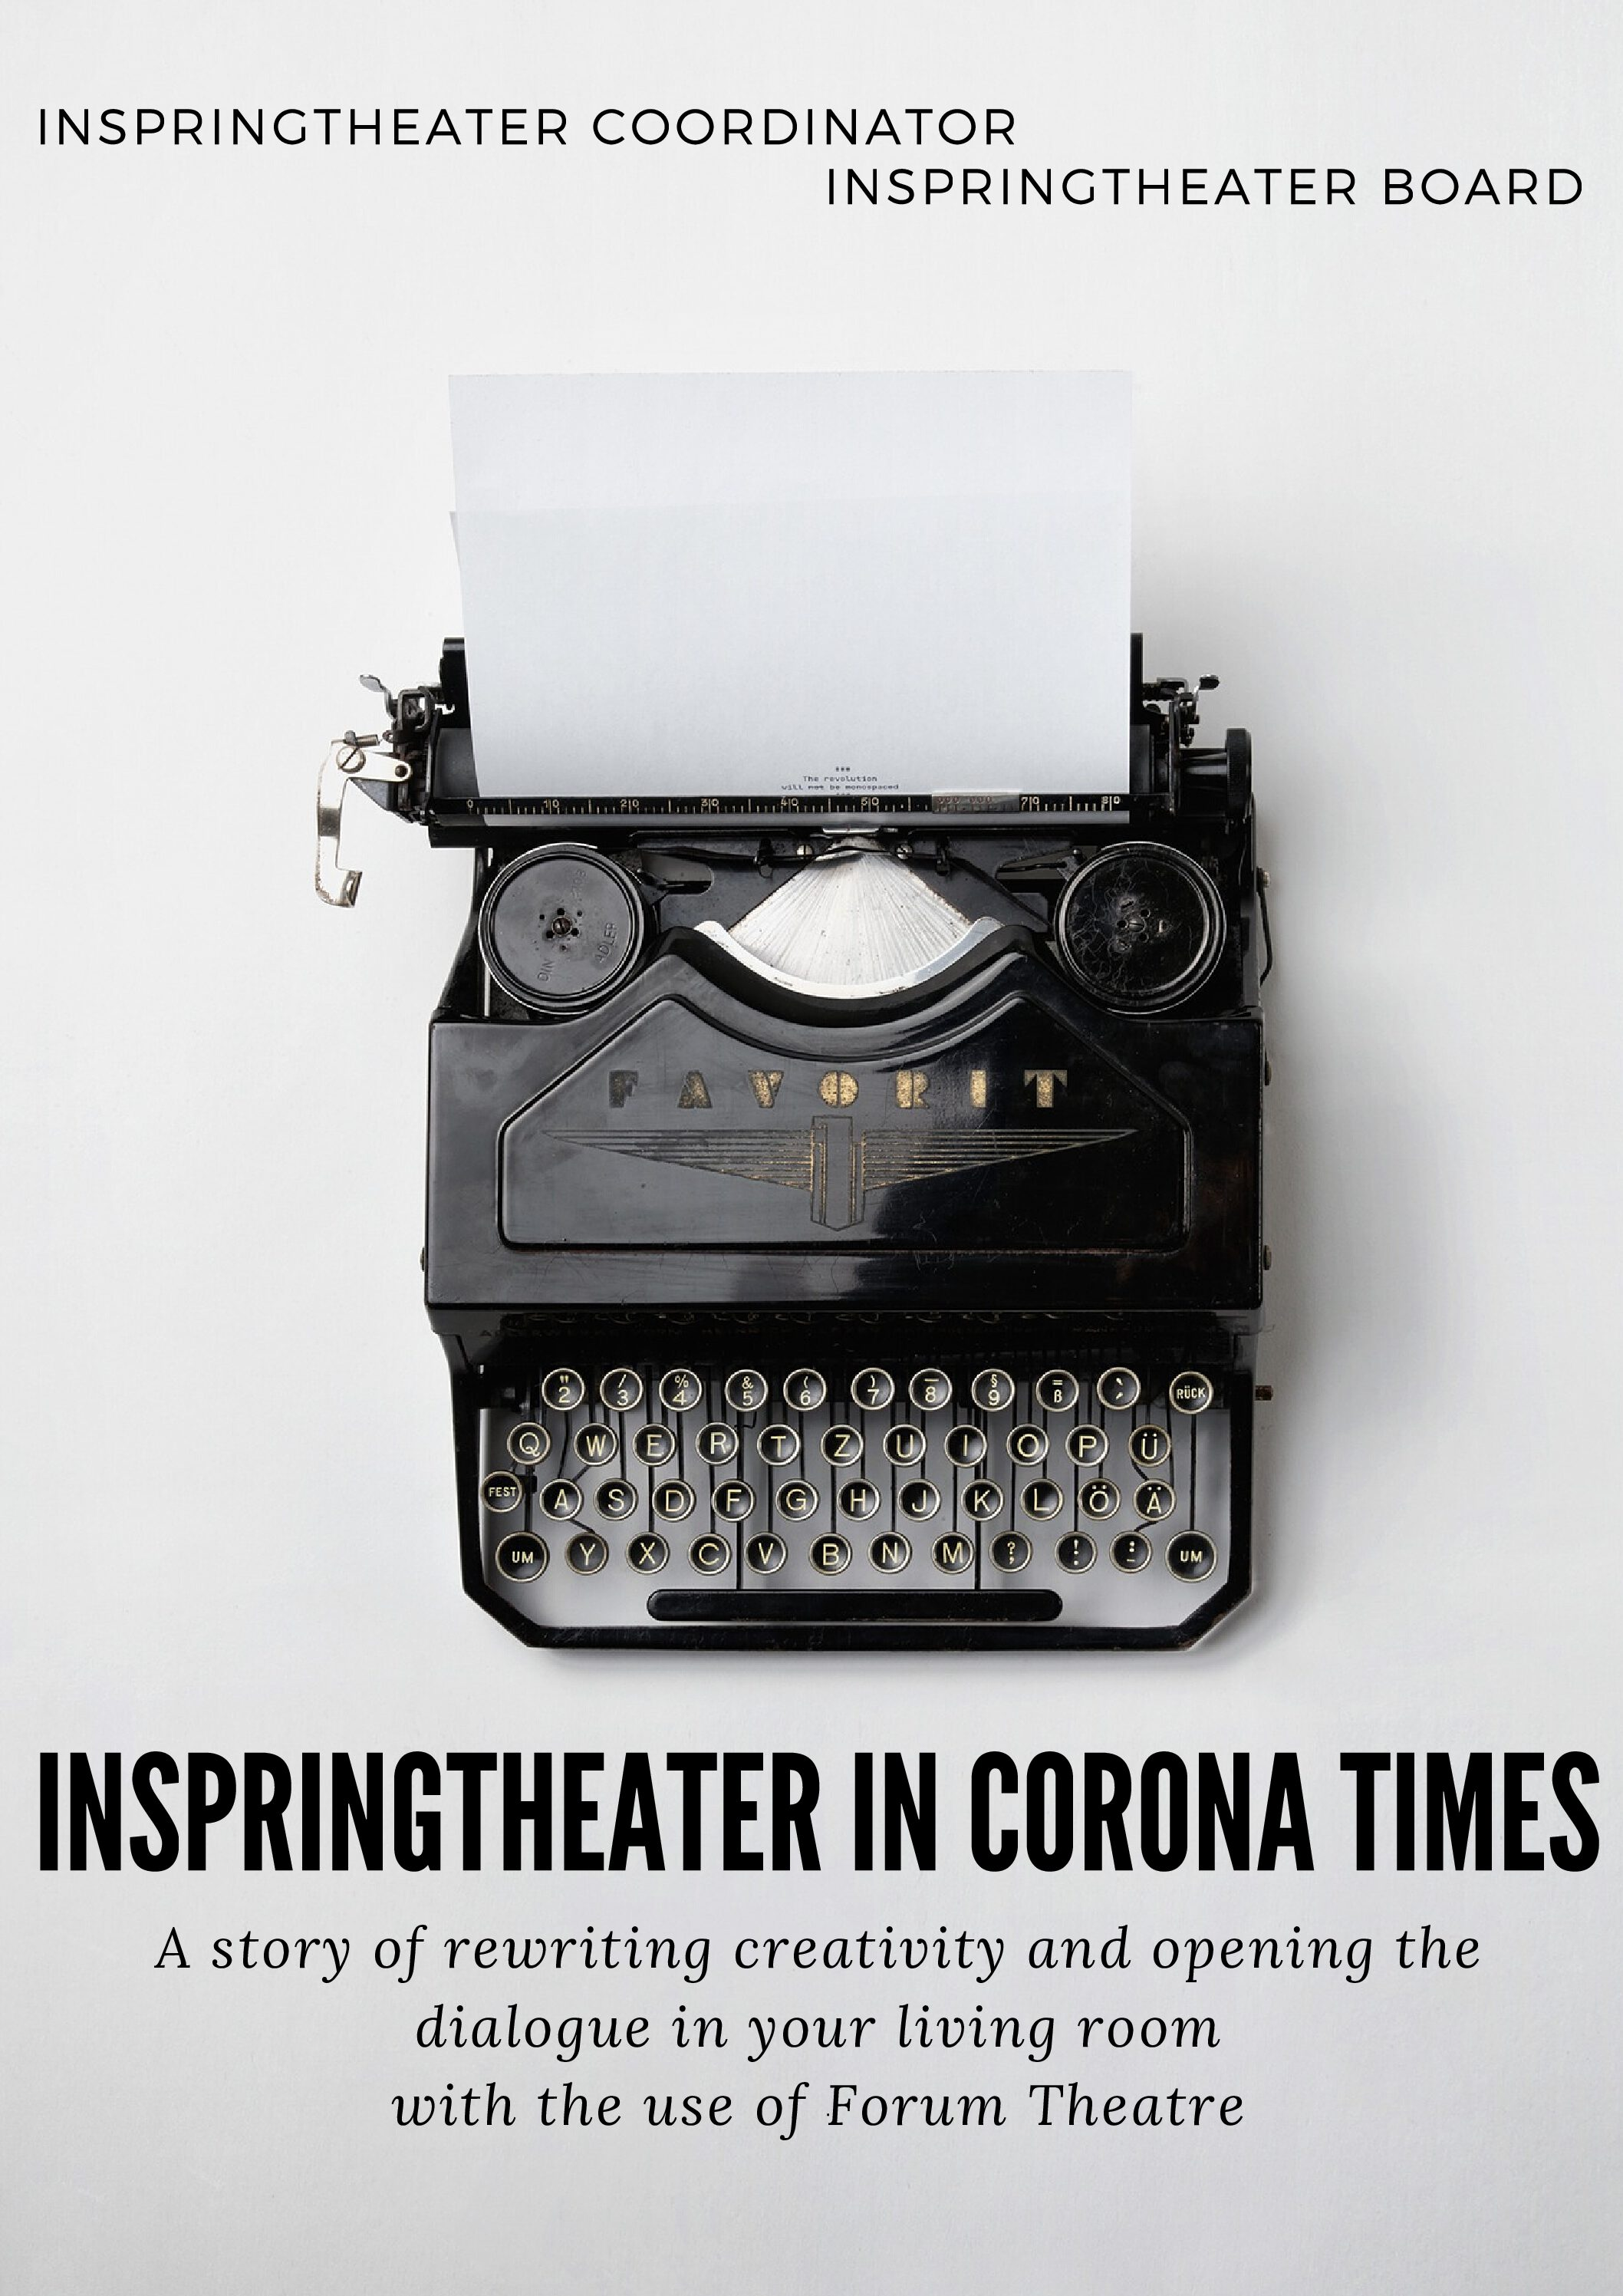 Inspringtheater in times of Corona